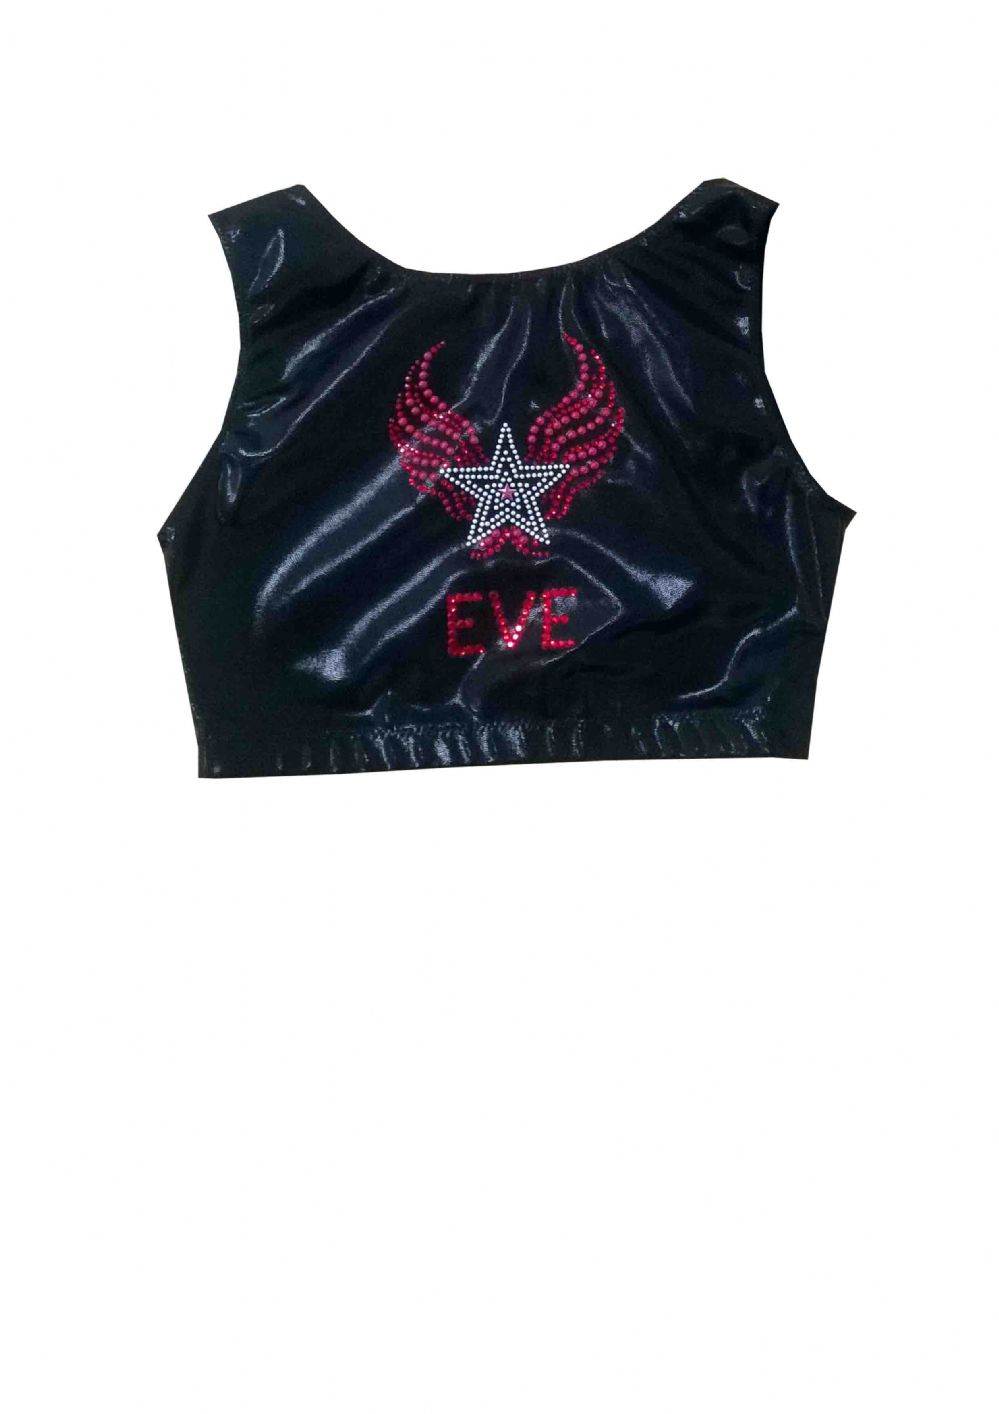 EARL410 Plain and Personalised Metallic and Velour Crop Tops With Star Motif  From £18.95